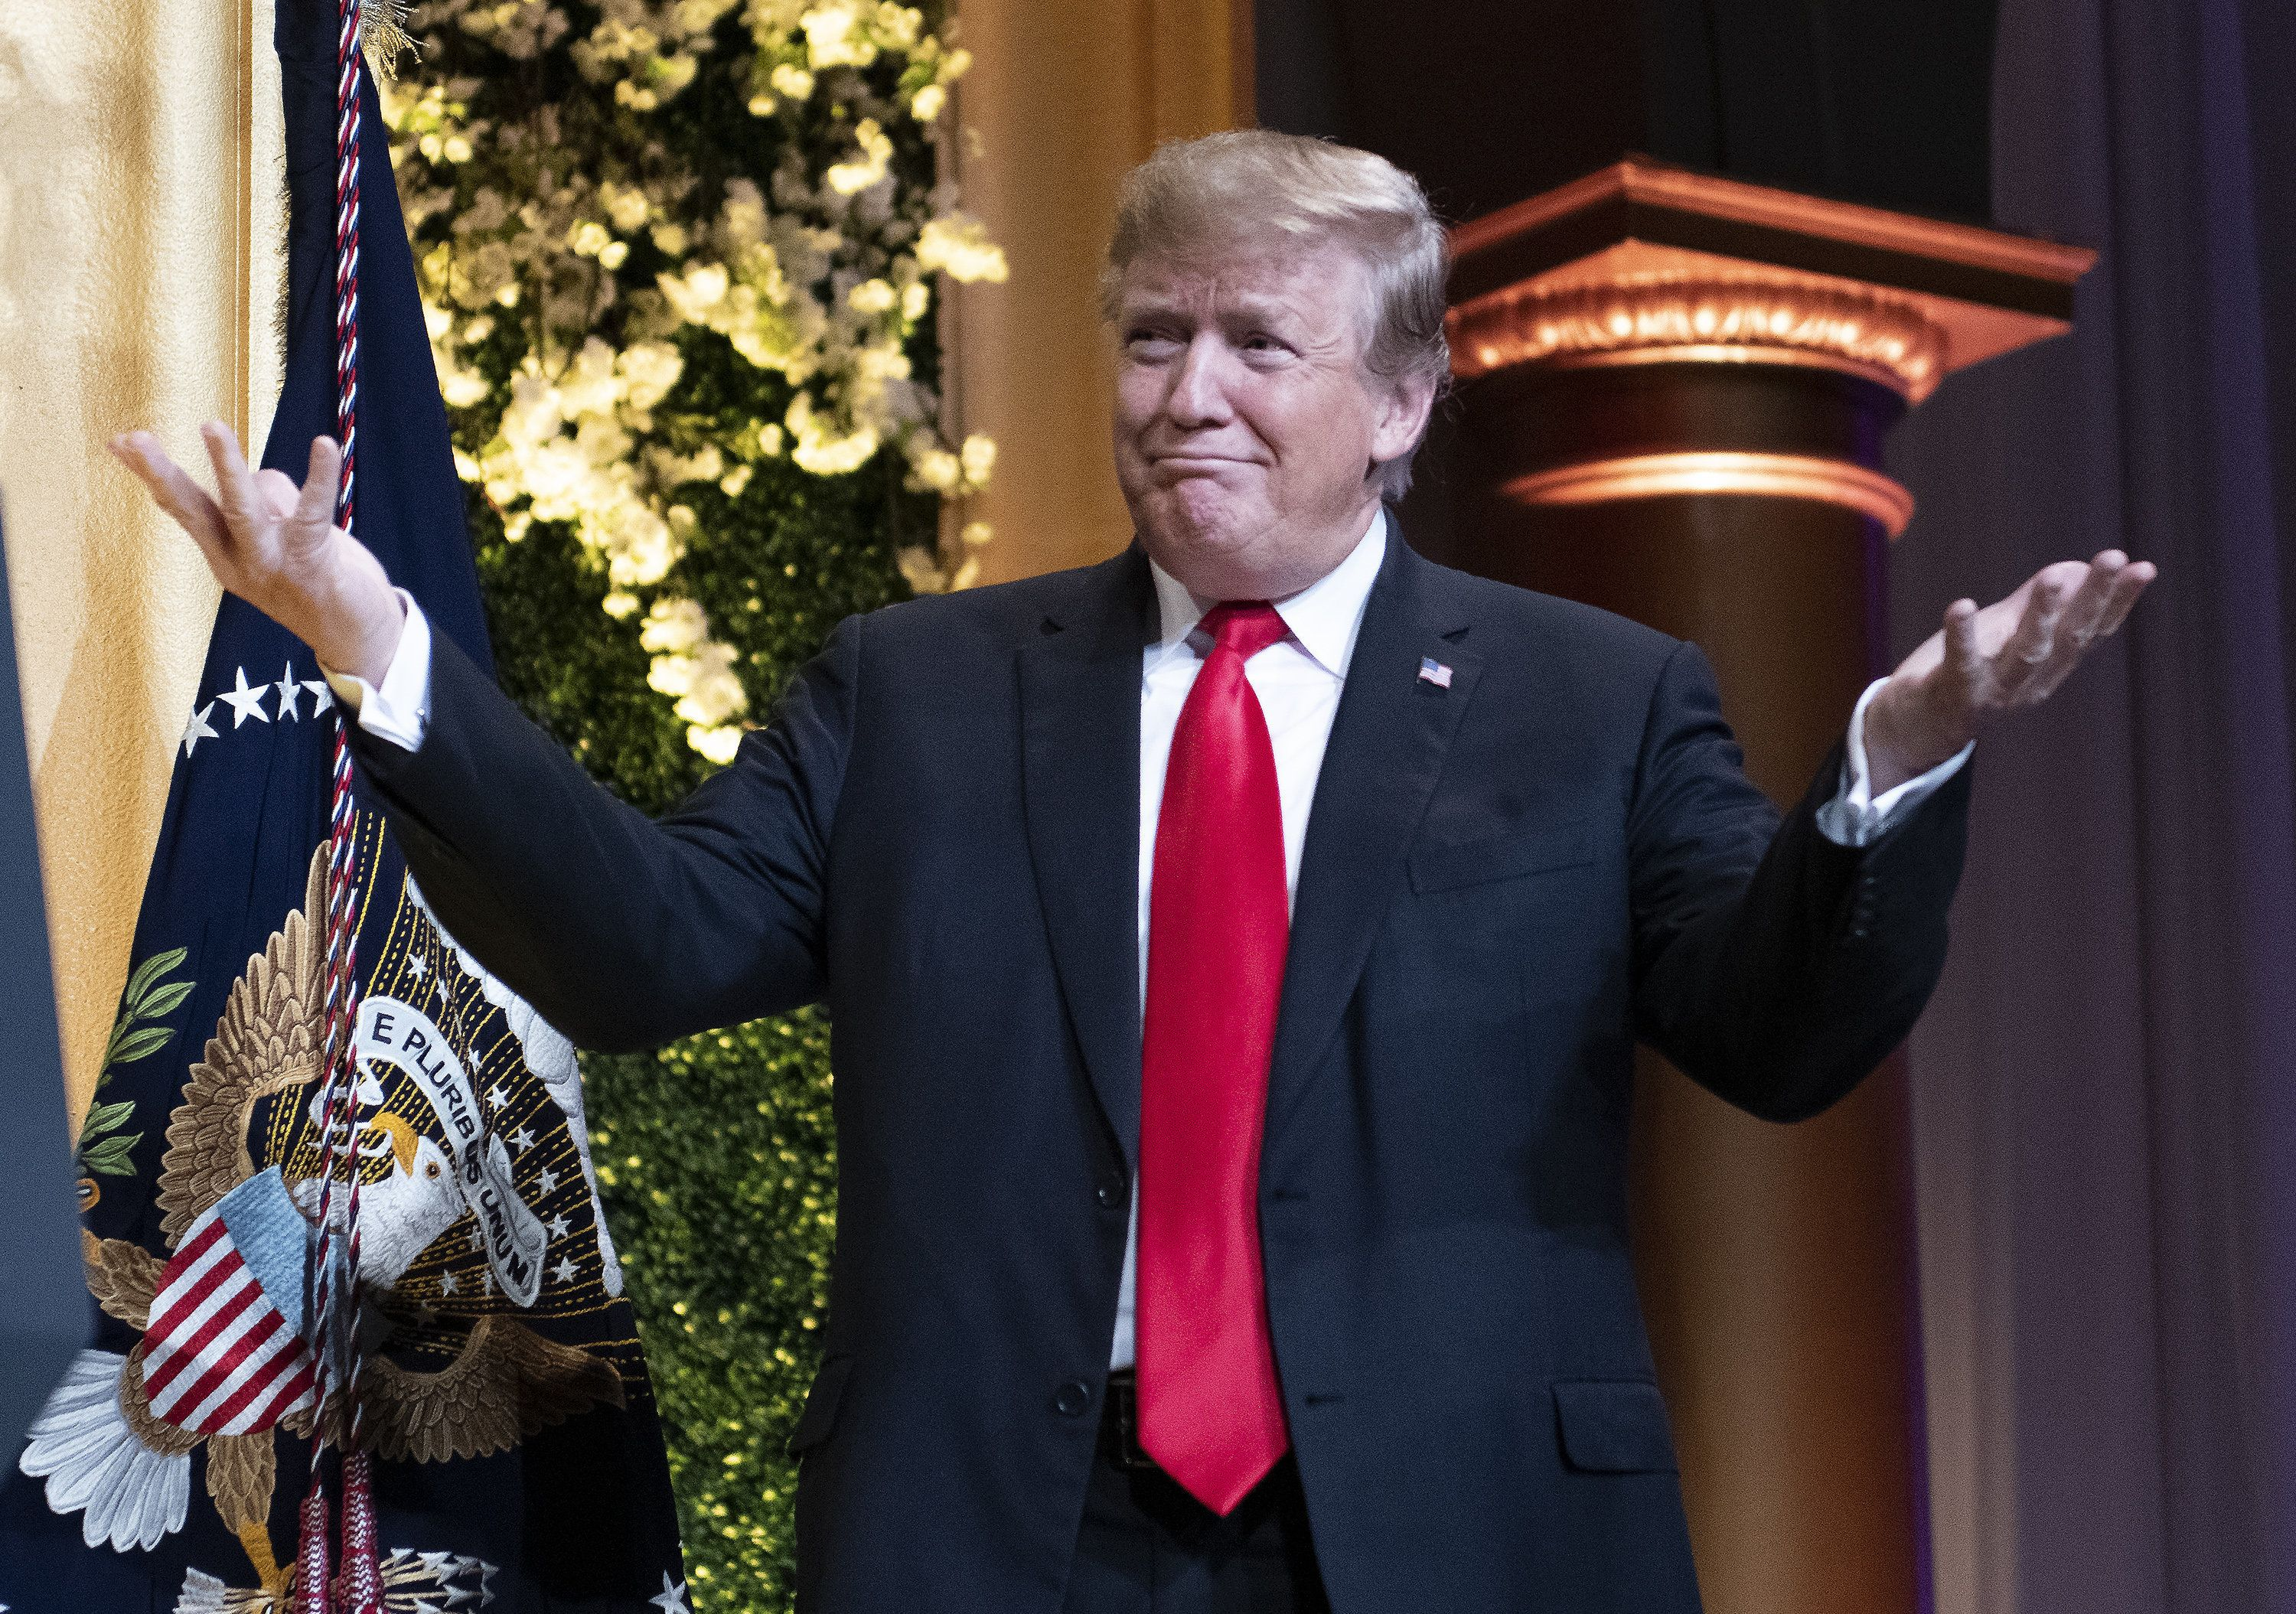 U.S. President Donald Trump gestures while arriving to speak at the National Republican Congressional Committee Annual Spring Dinner in Washington, D.C., U.S., on Tuesday, April 2, 2019. Trump said Republicans would wait until after the 2020 election to vote on a replacement for Obamacare, abruptly halting a push he began just last week and guaranteeing that the issue will take center stage in his re-election campaign. Photographer: Ron Sachs/Pool via Bloomberg